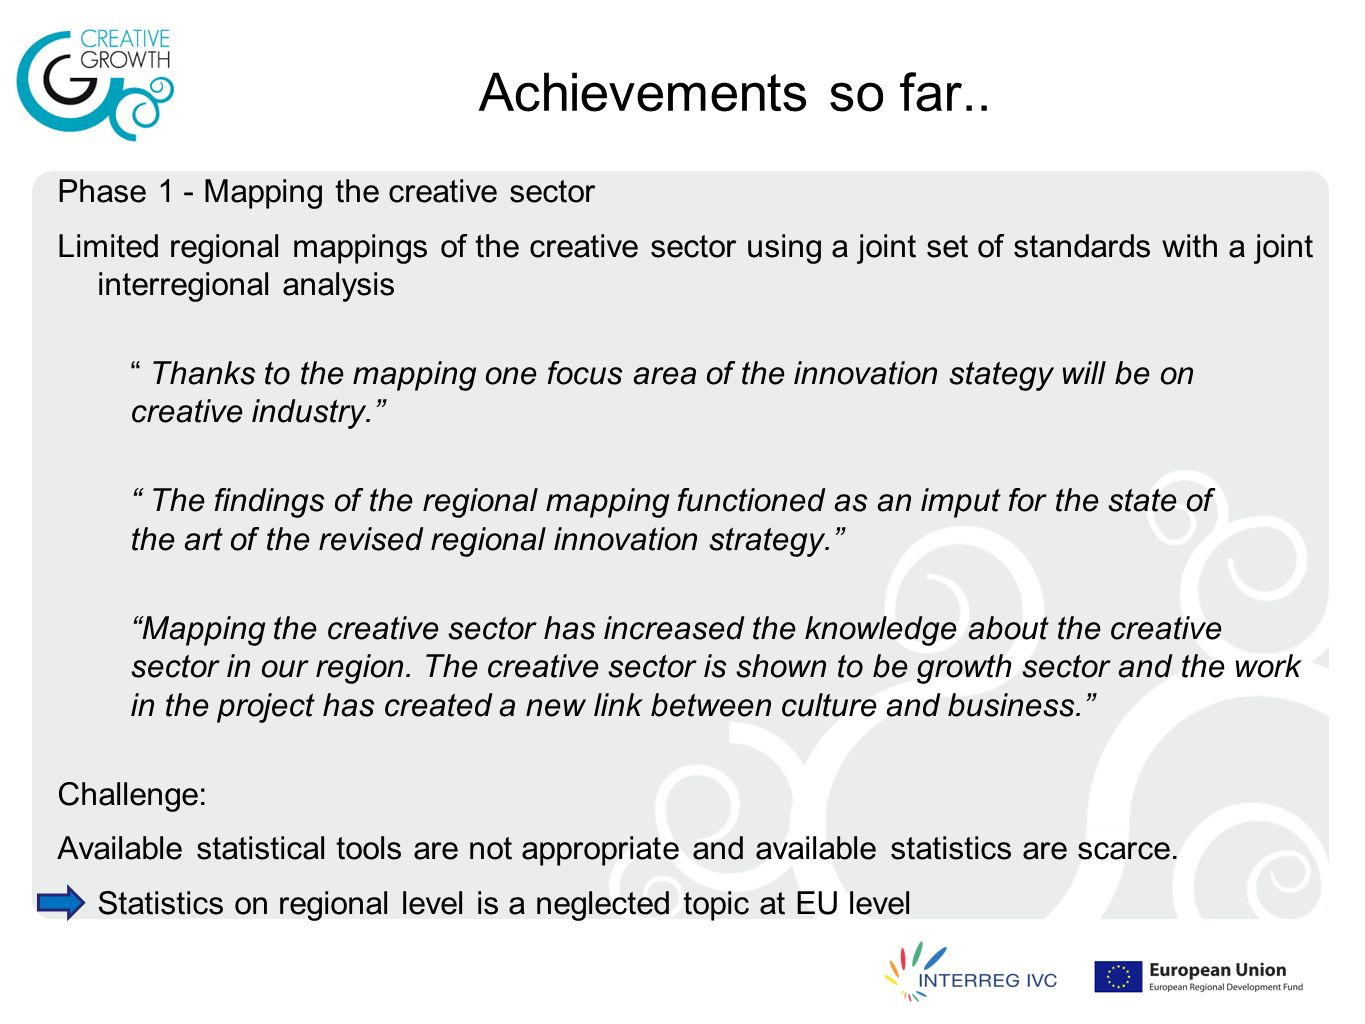 Phase 2 – Benchmarking 4 Thematic working groups on Access to Finance, Incubators, Science and Industry and Networks 4 Pilot cases (ongoing activities) Creative Growth new business support path (Asters IT) - defining a specific support path for new creative businesses and testing this path on a selection of companies.